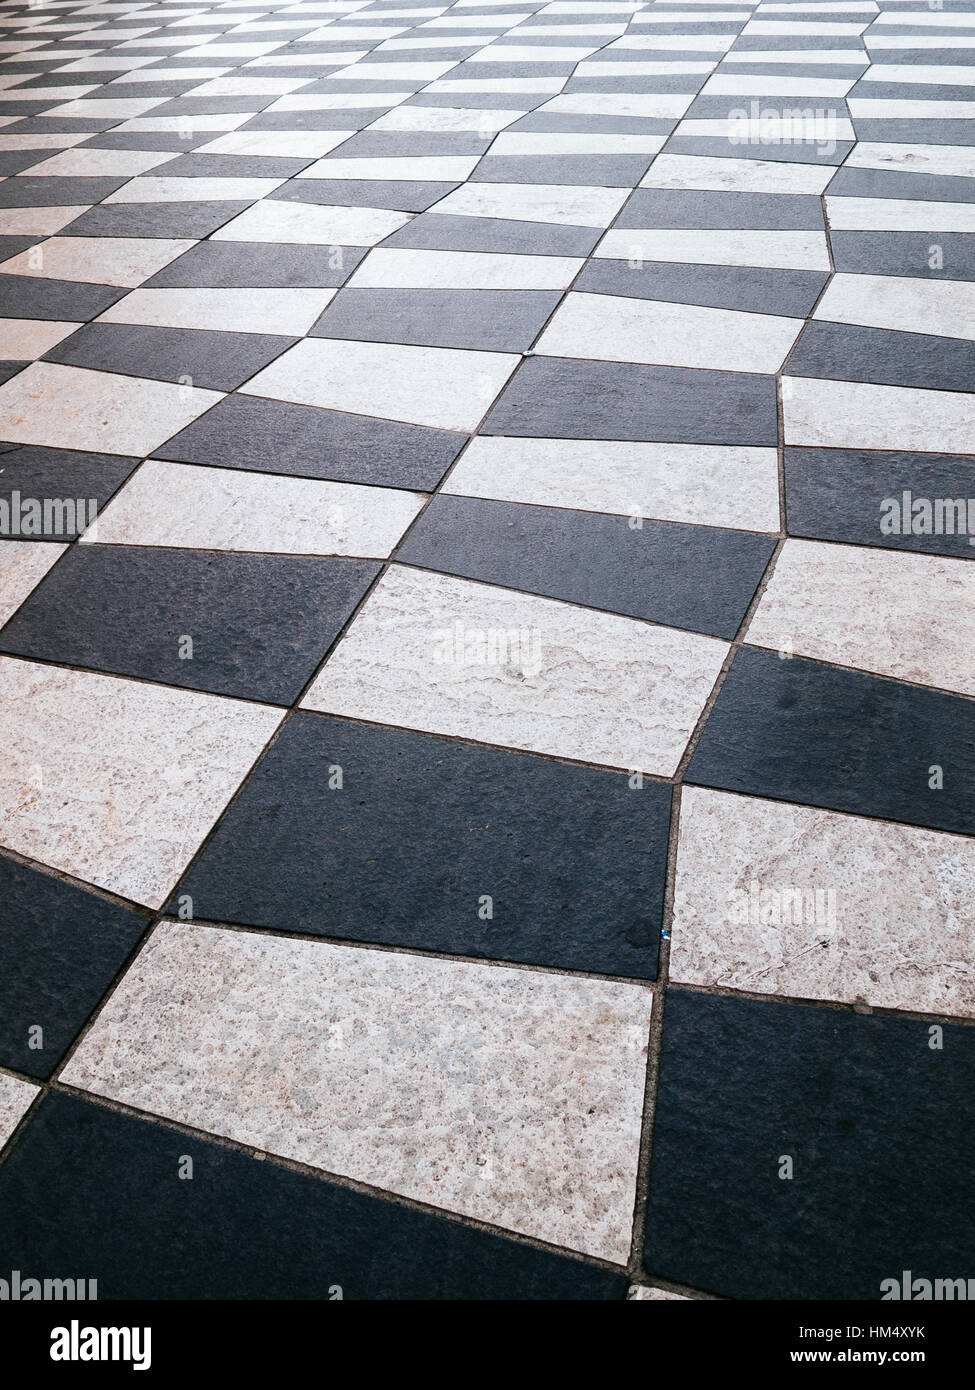 Texture pavement walkway. Place Massena in Nice, France - Stock Image